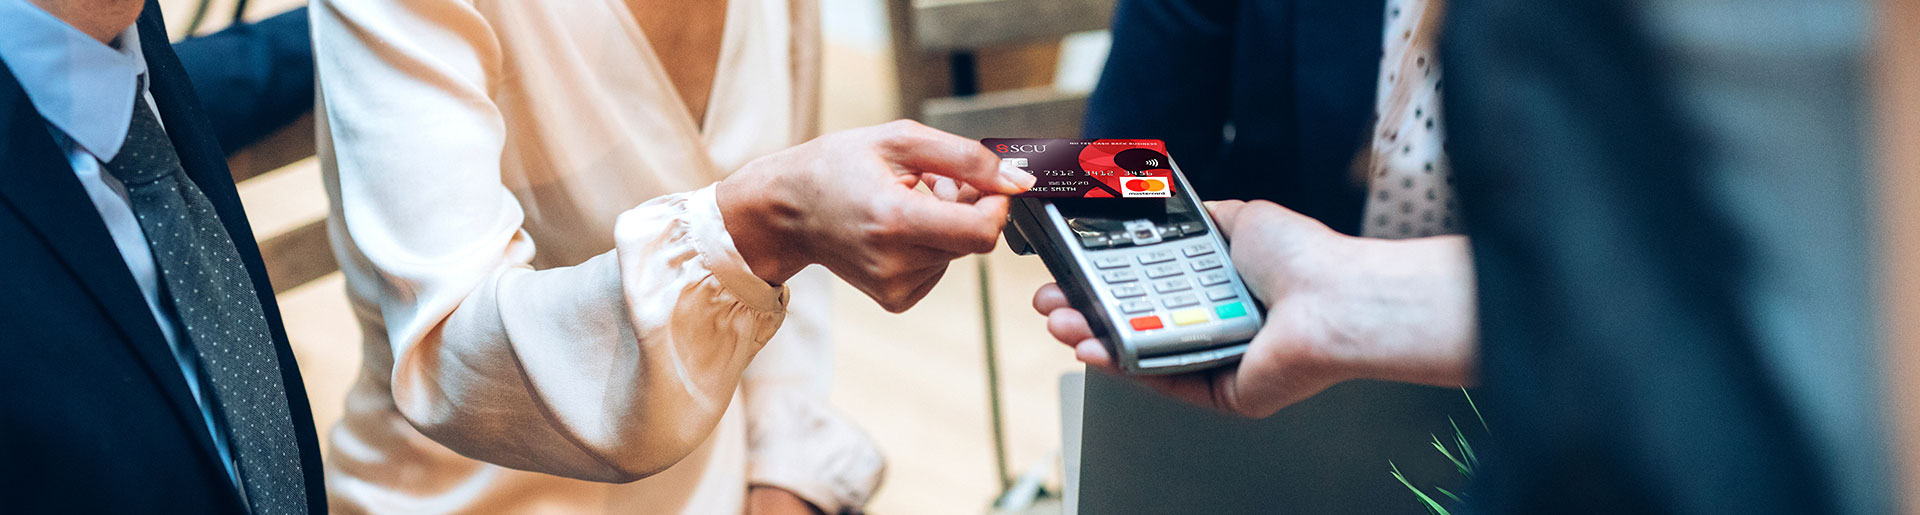 4 ways a credit card can help your business